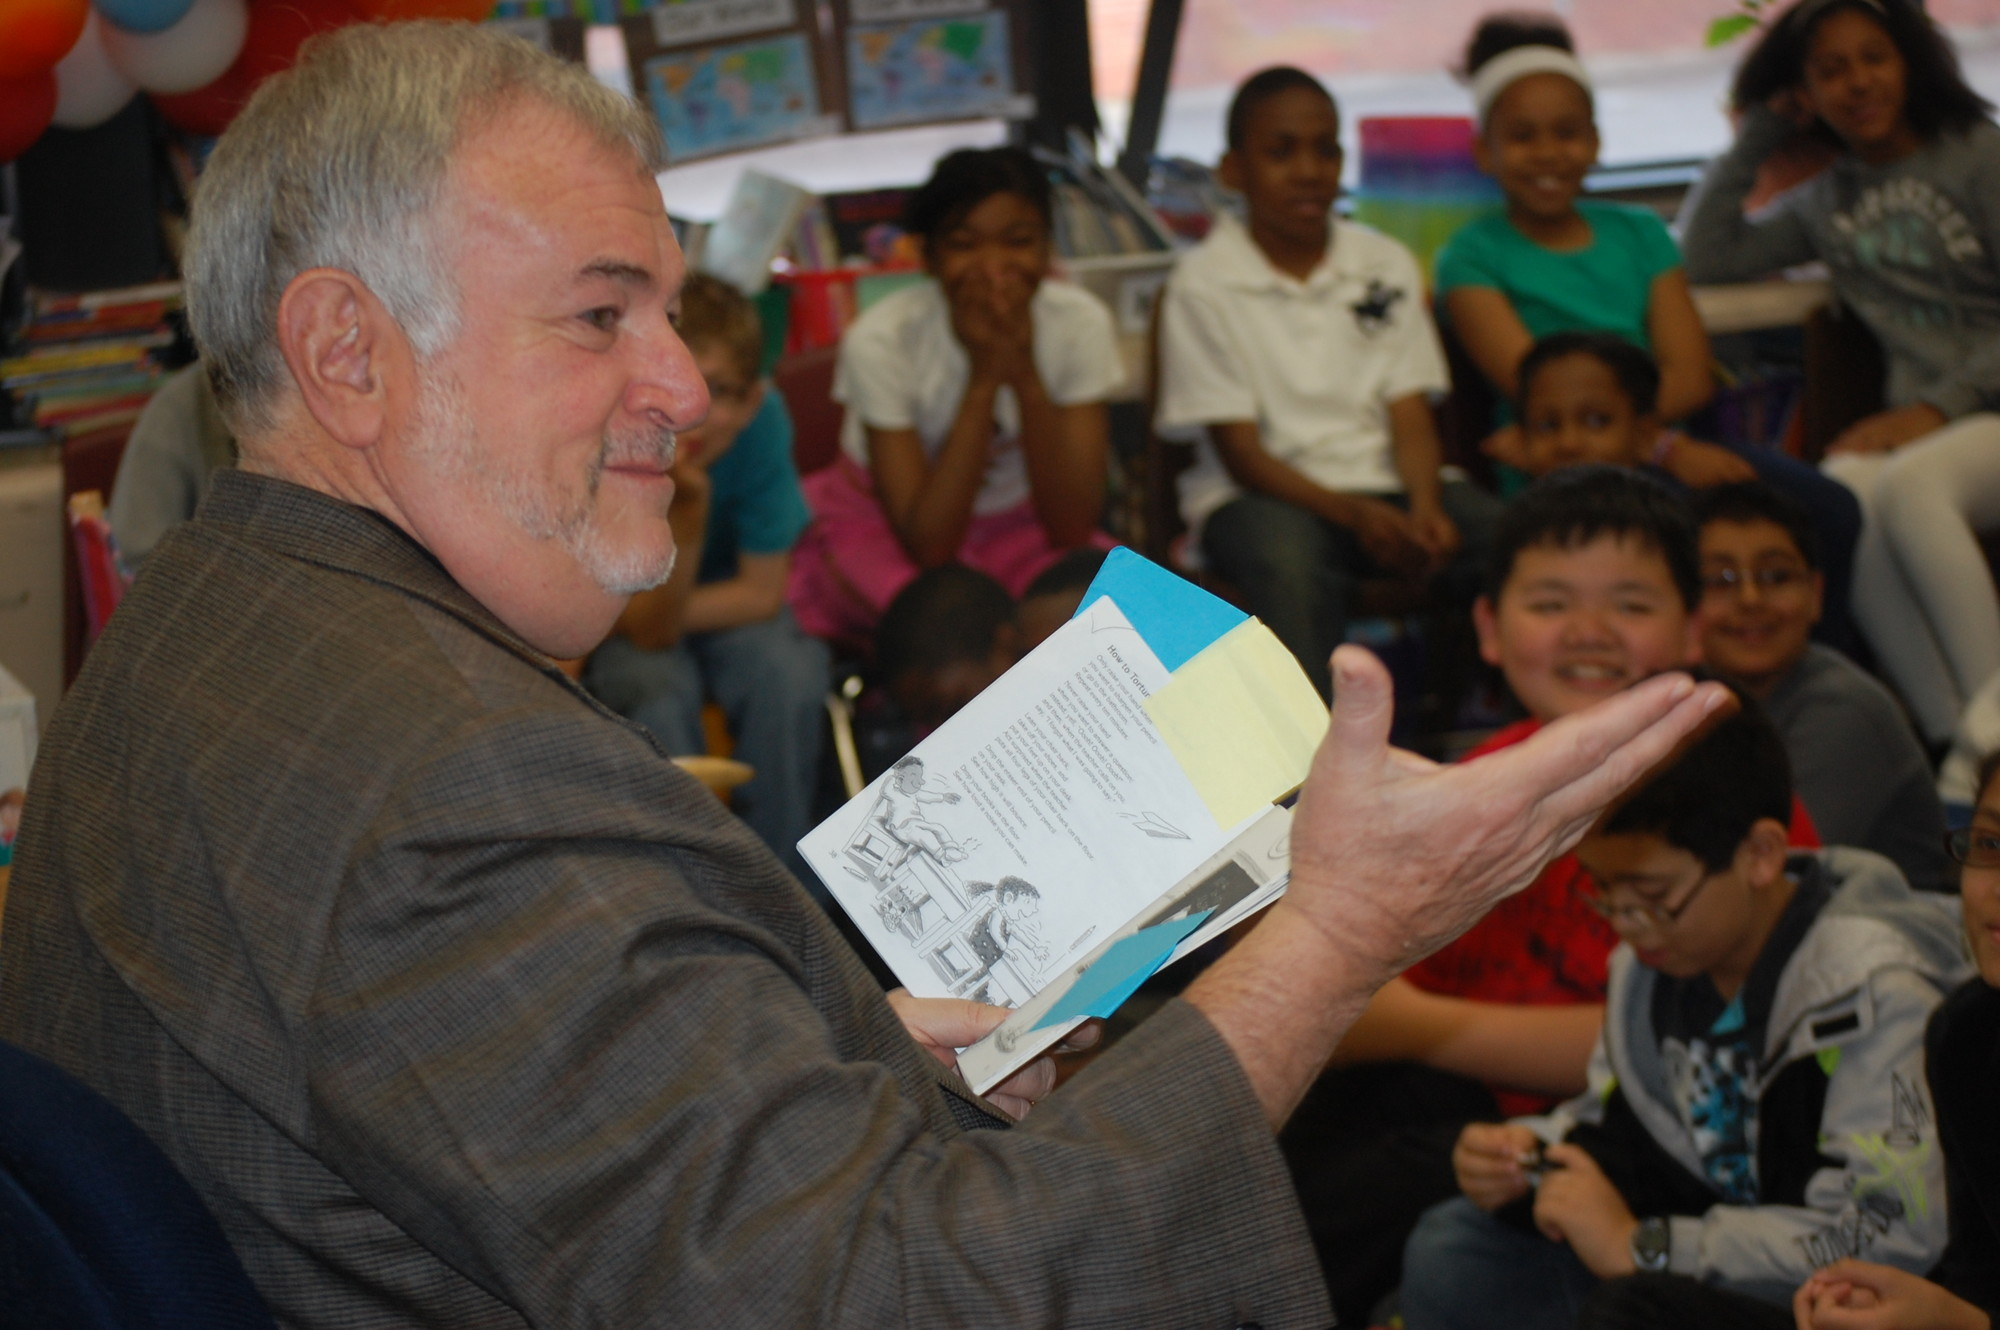 Roger Tilles, Long Island's representative on the New York State Board of Regents, read poems to a fourth-grade class at Howell Road School on May 8.